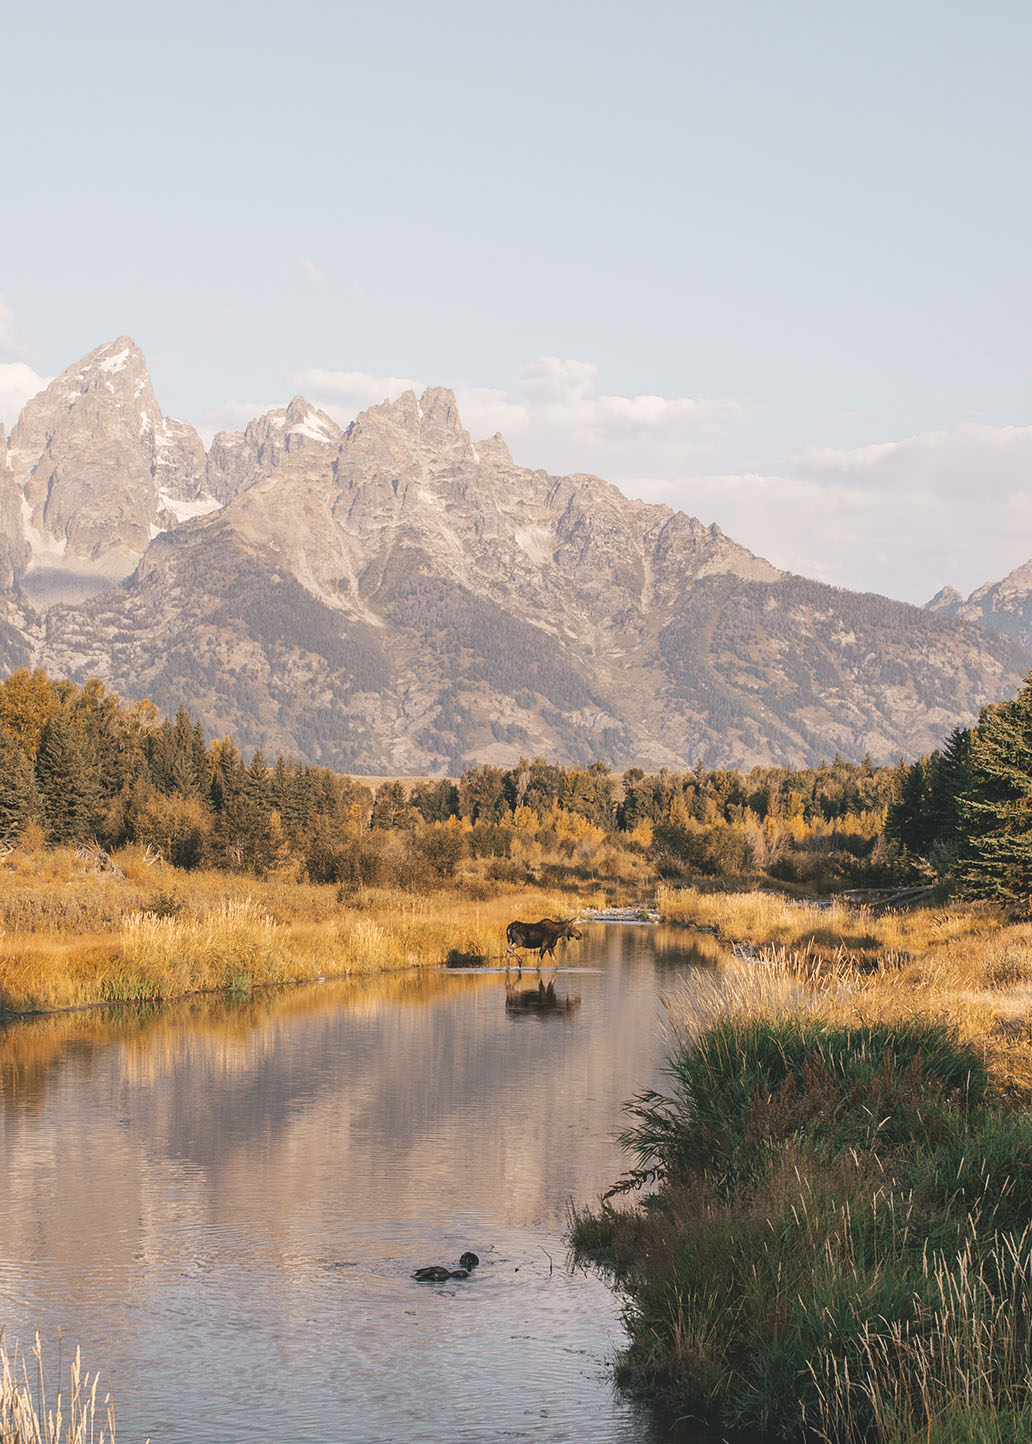 Moose at Schwabacher Landing